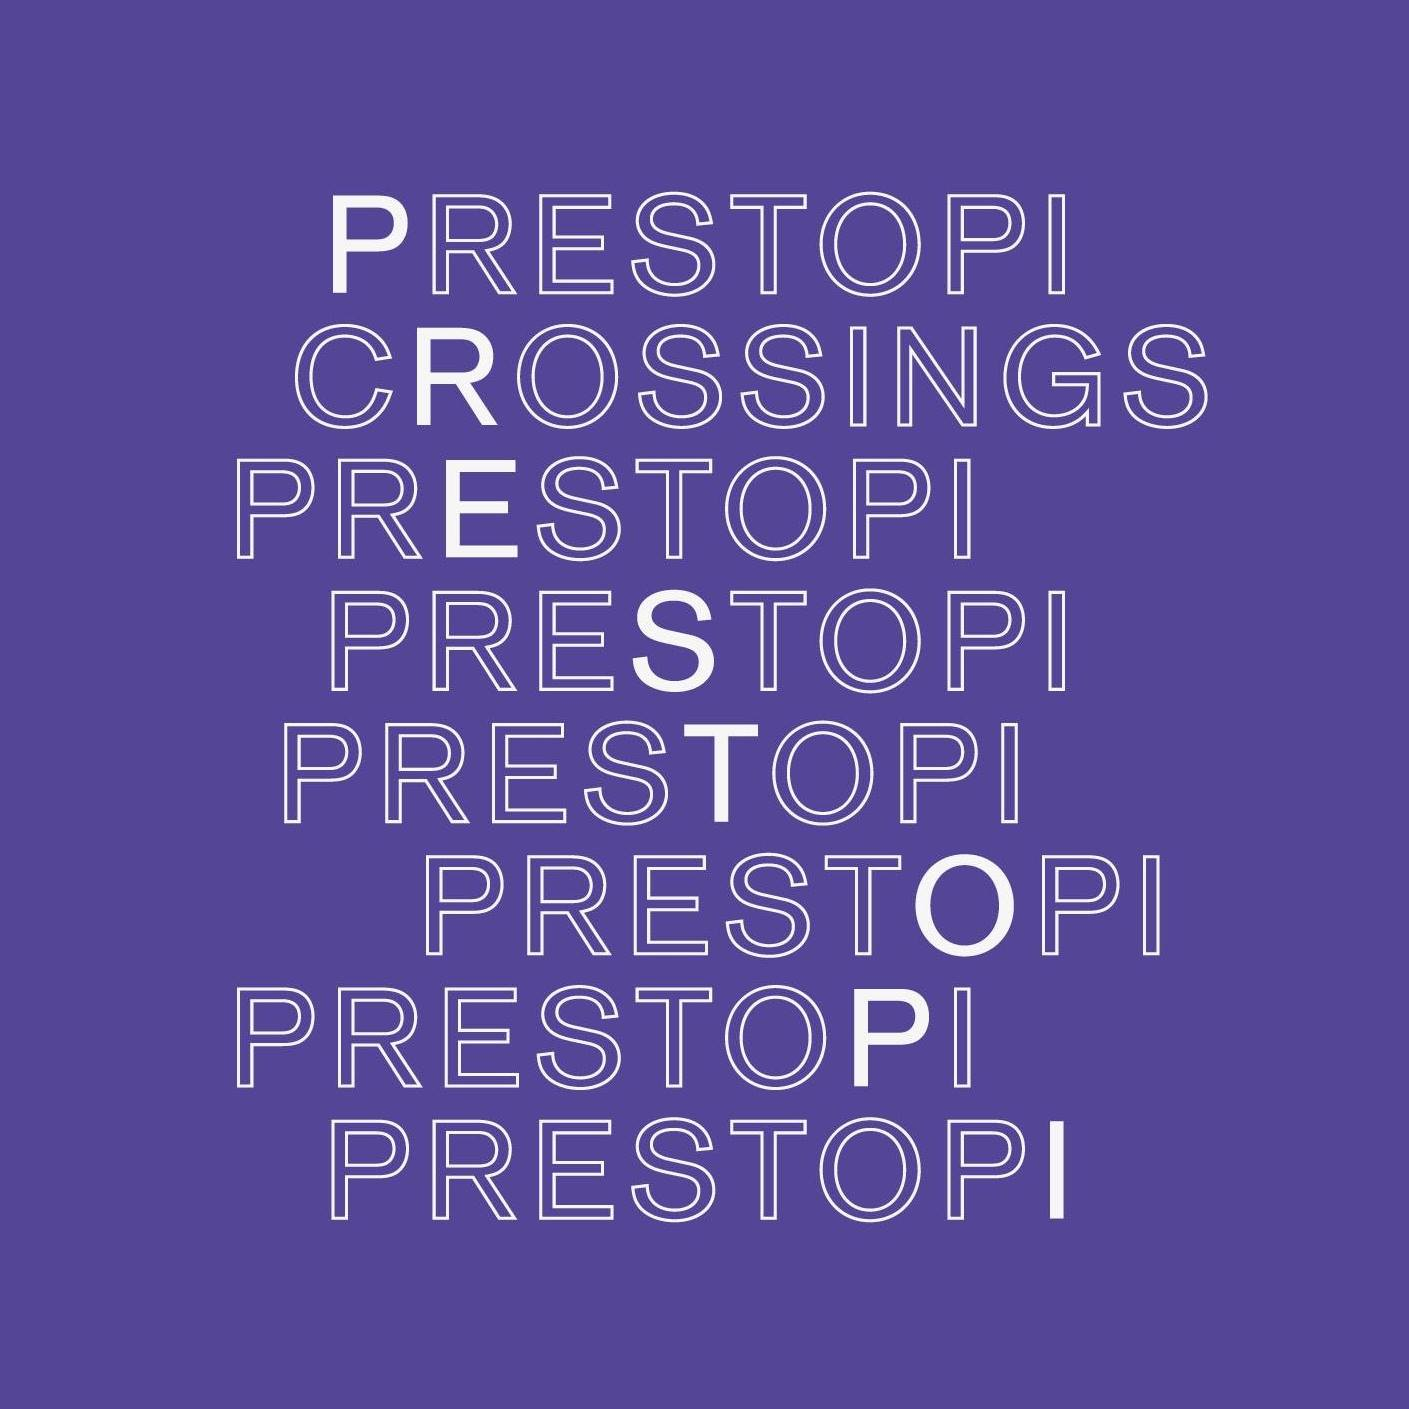 prestopi crossings festival logo